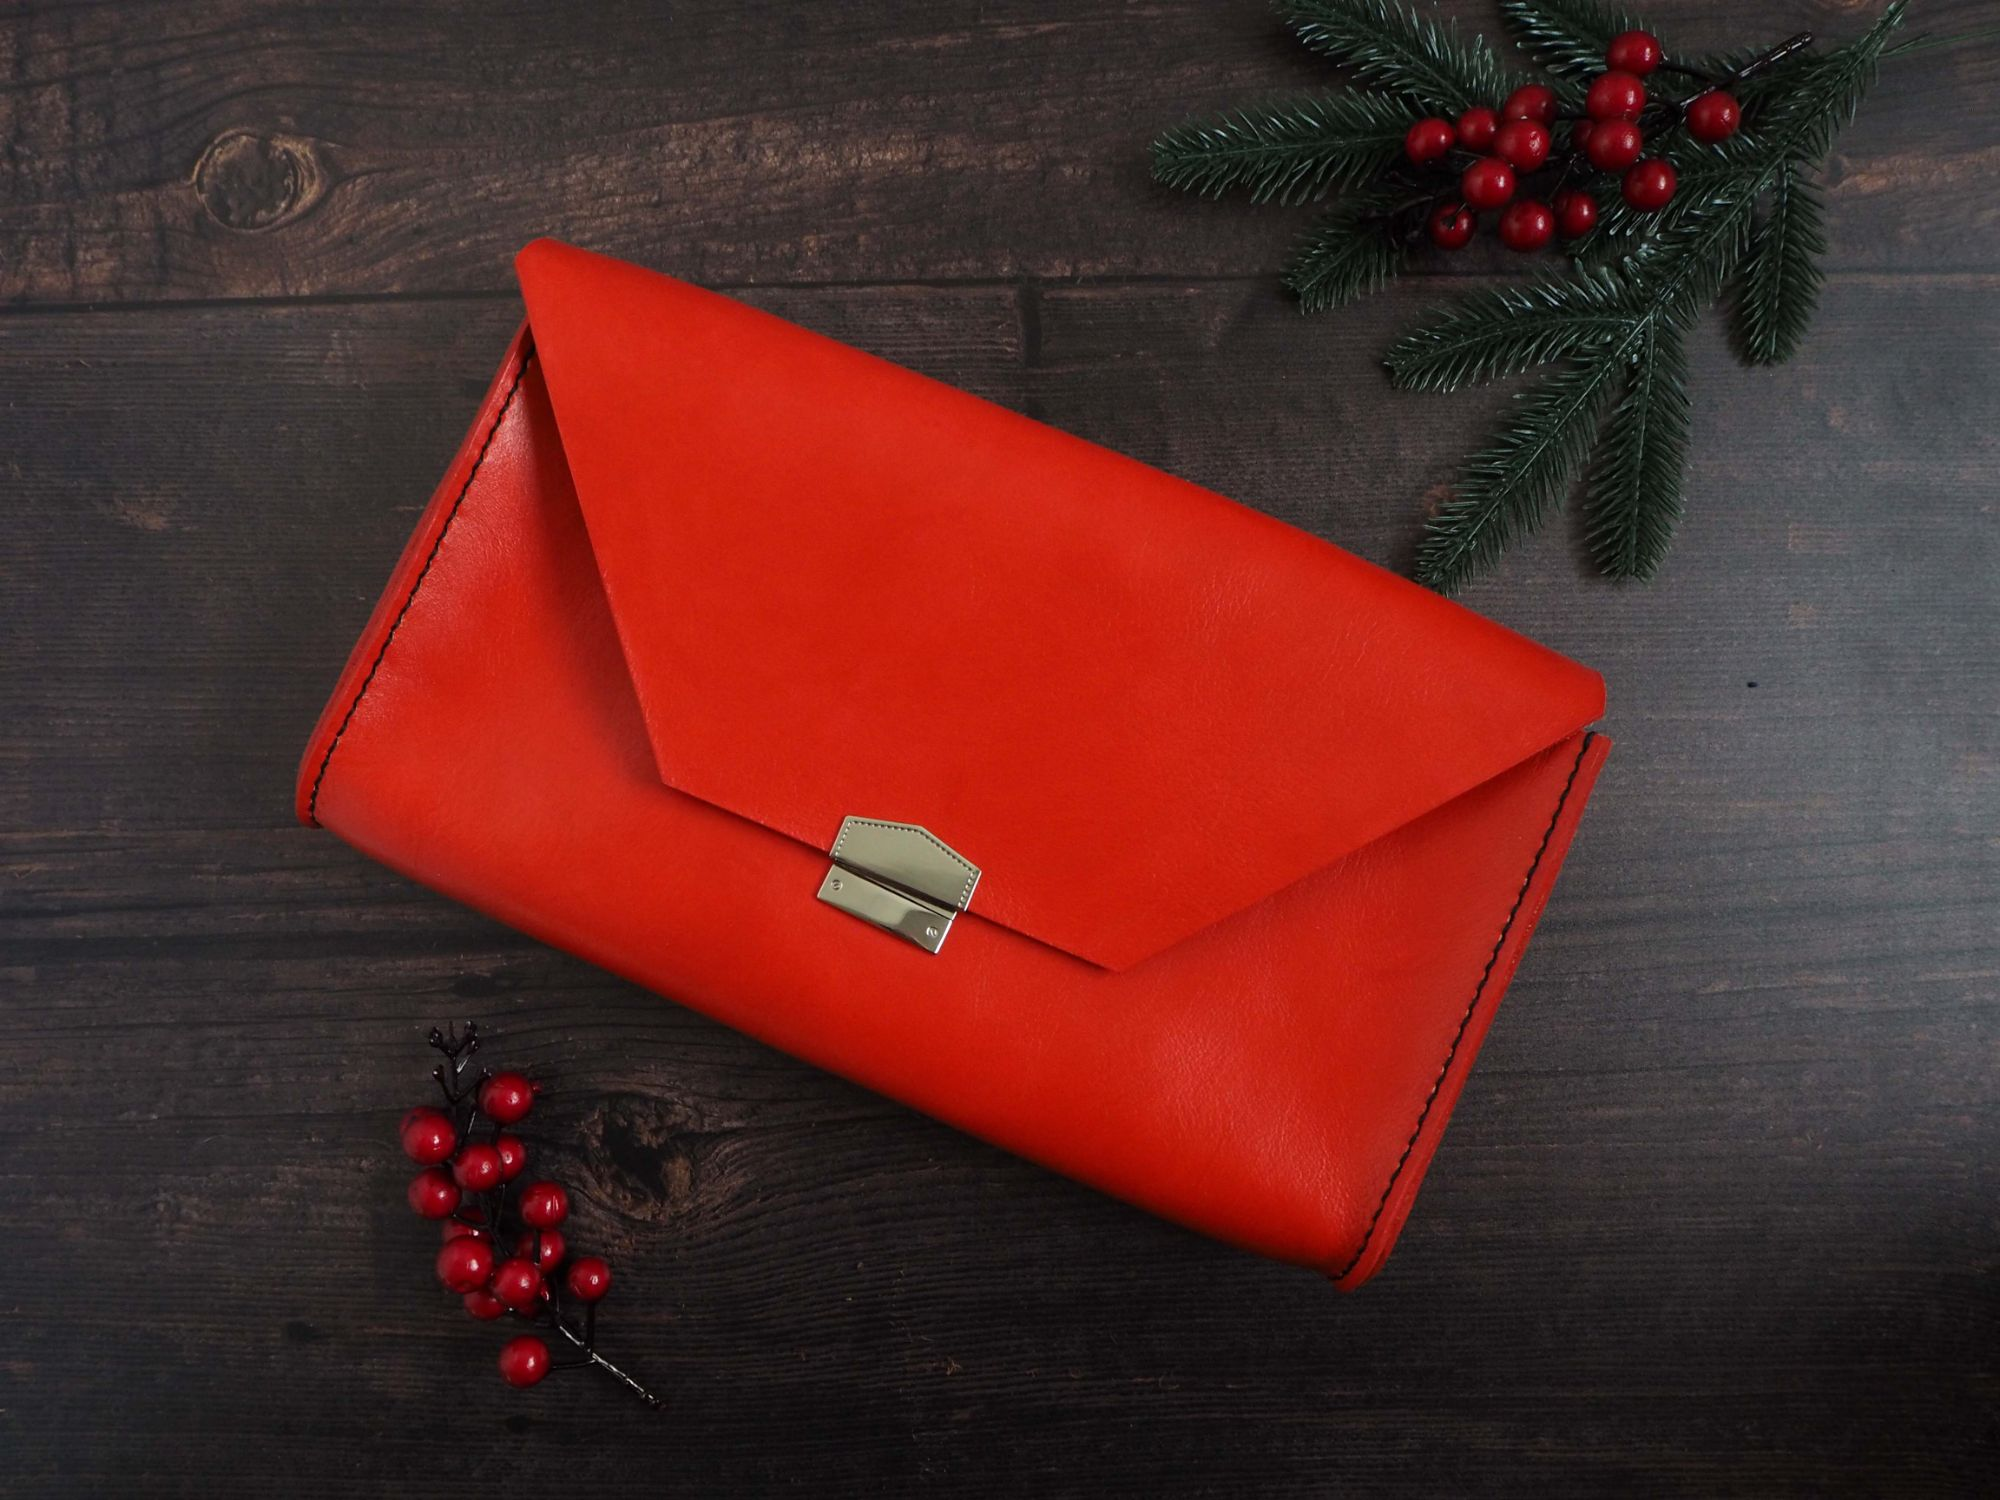 Hand Stitched Red Leather Shoulder Clutch Bag